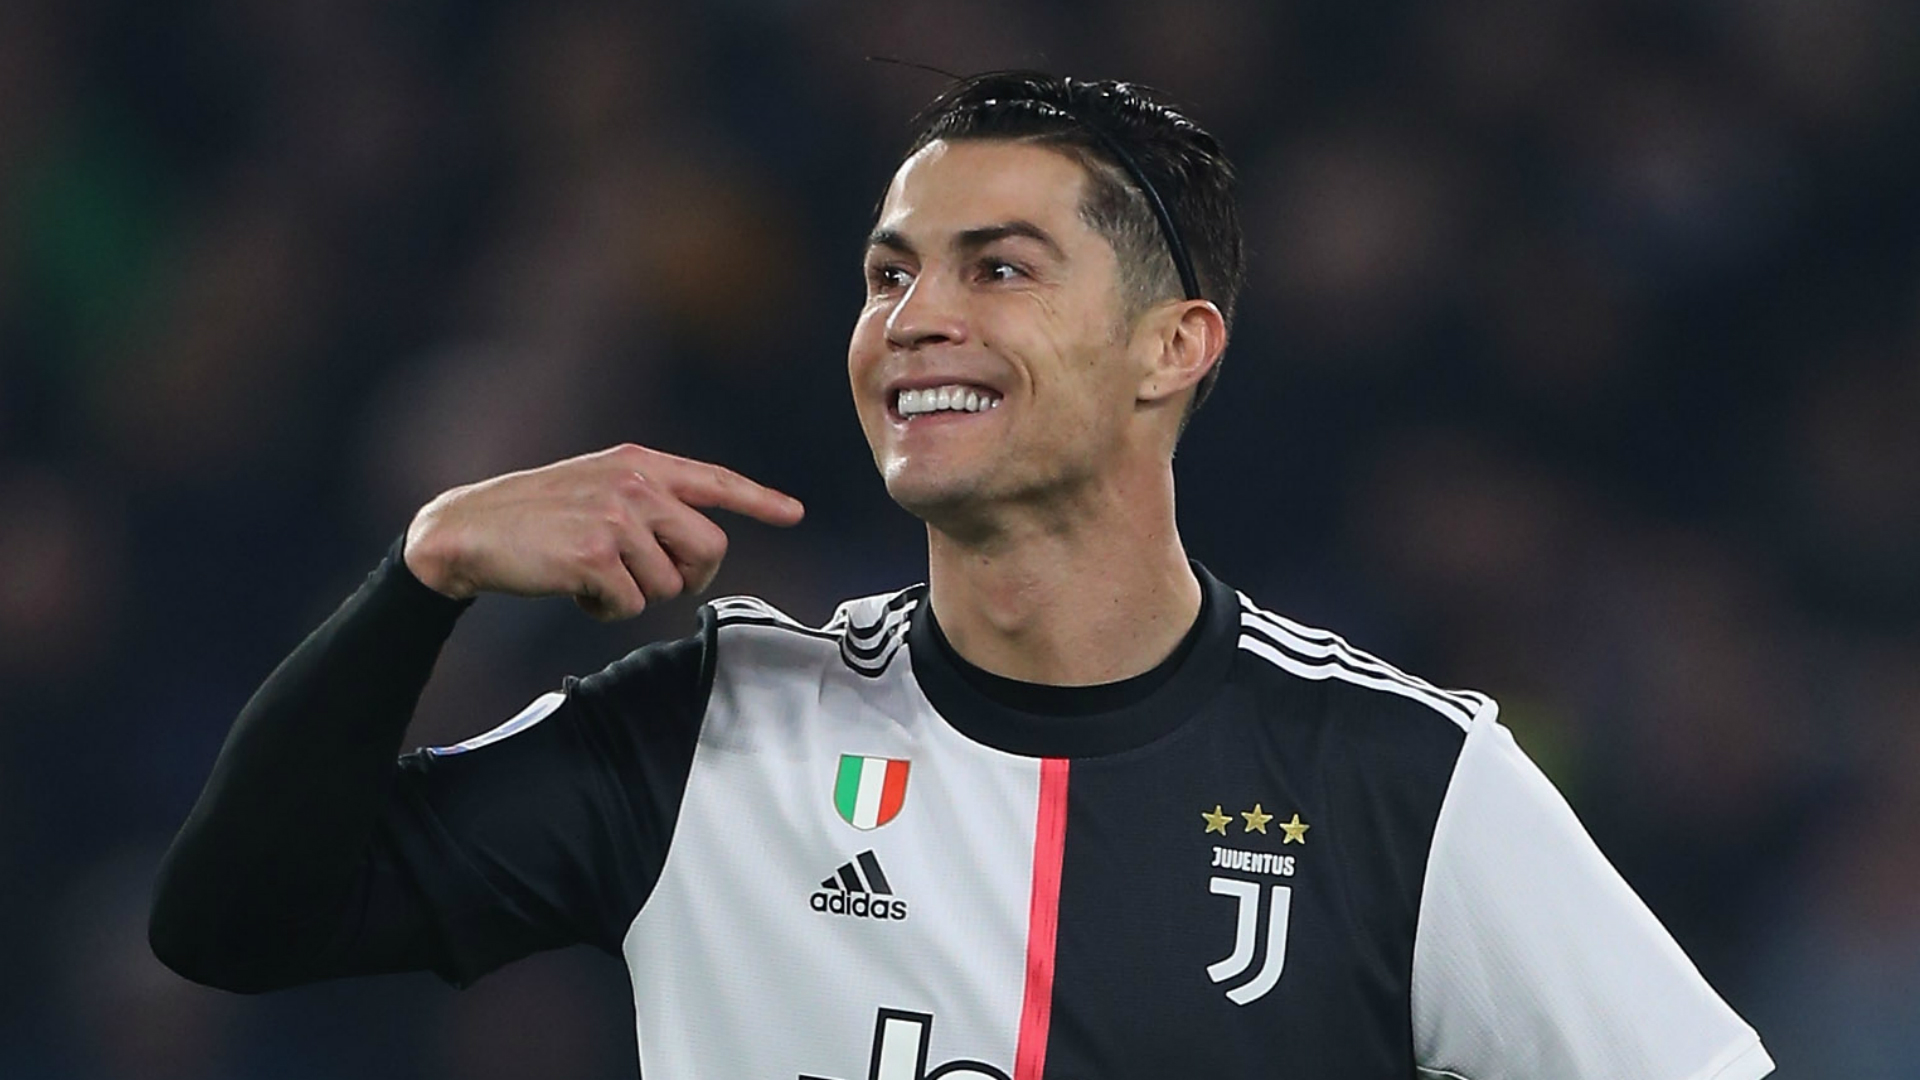 Ronaldo: I would sign up now to meet Real Madrid in Champions League final